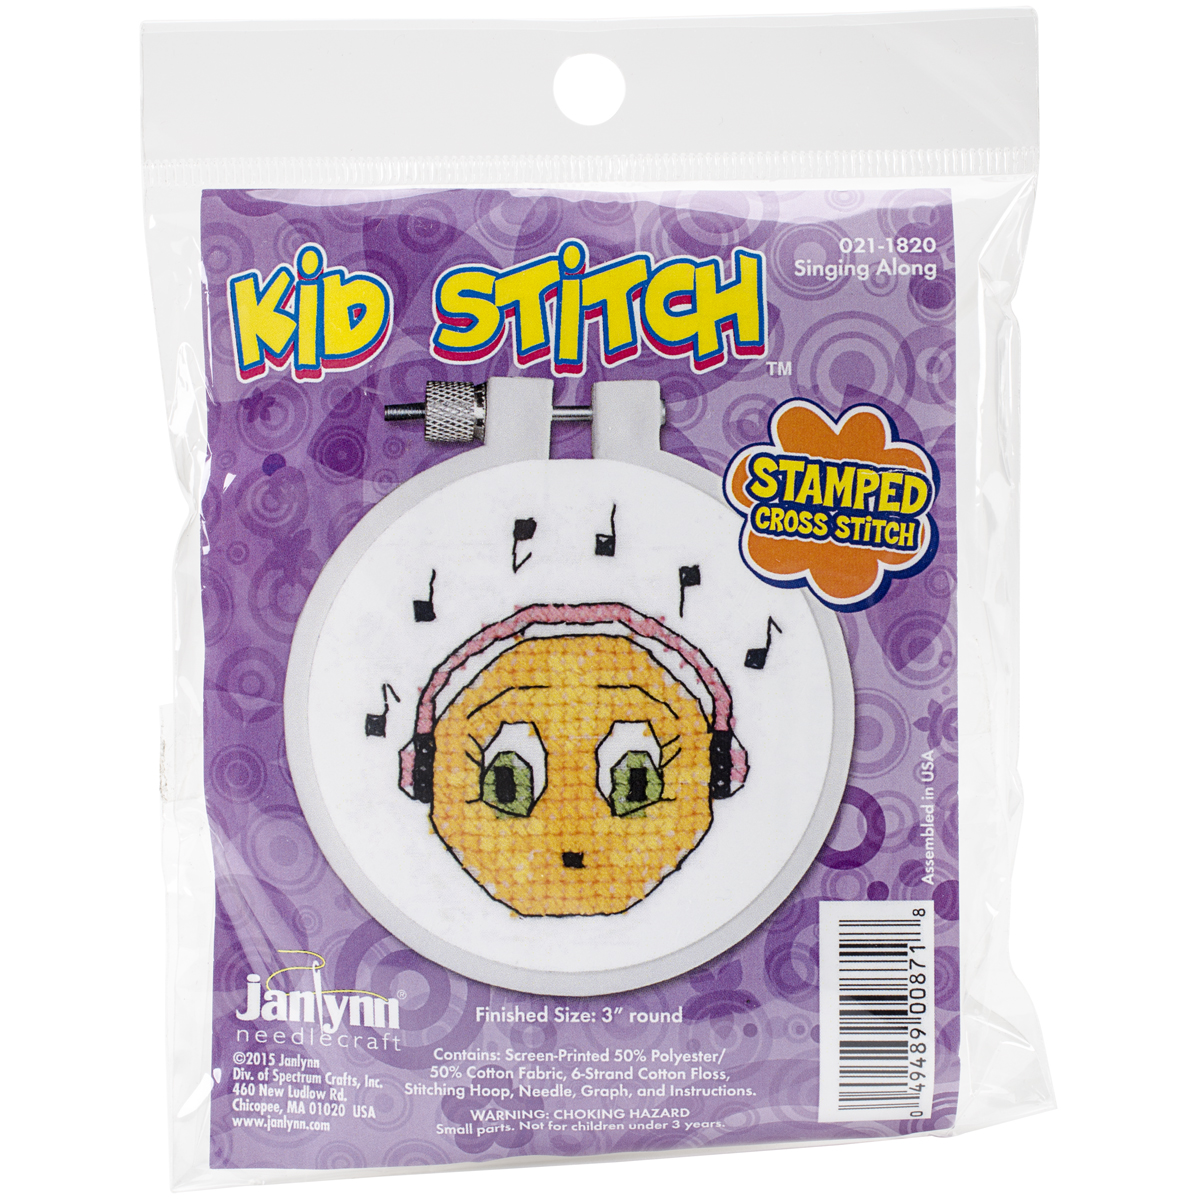 "Kid Stitch Singing Along Stamped Cross Stitch Kit, 3"" Round"